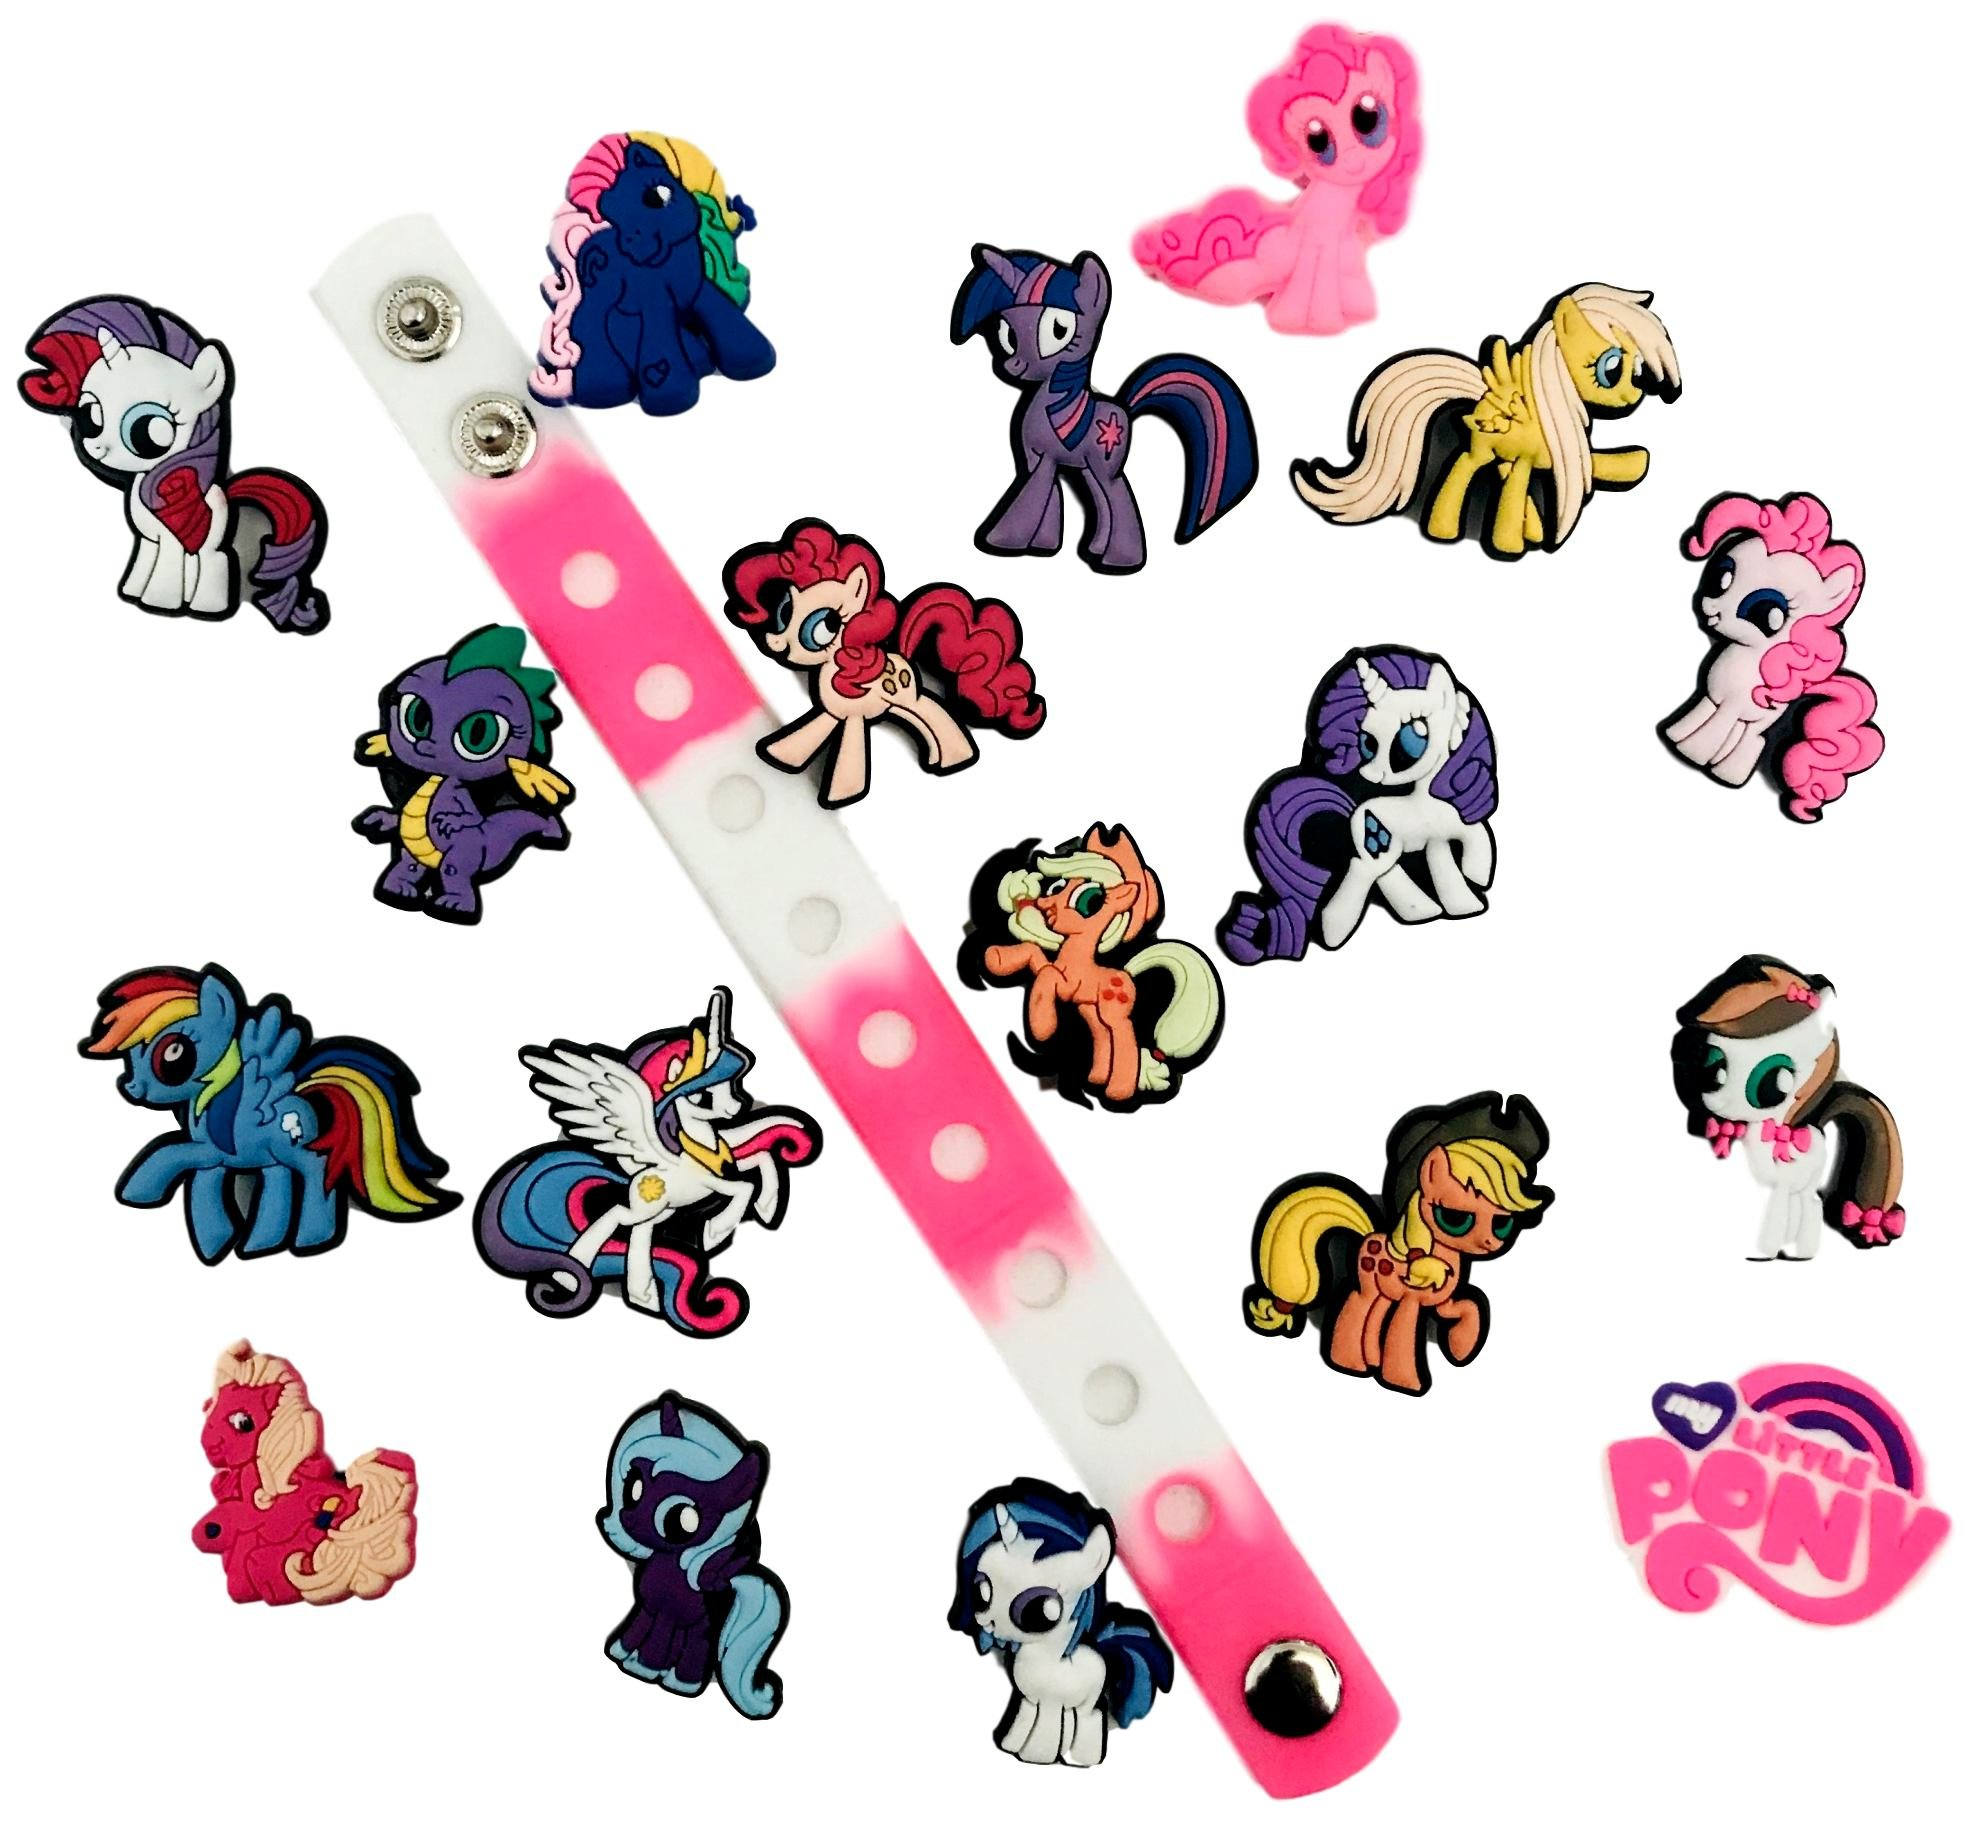 Cute Jibbitz Shoe Charms PVC Plug by Nenistore| Accessories for Croc Shoes & Bracelet Wristband Party Gifts | My Little Pony (Set of 8 assorted pcs) FREE 01 Silicone Wristband 7 inches